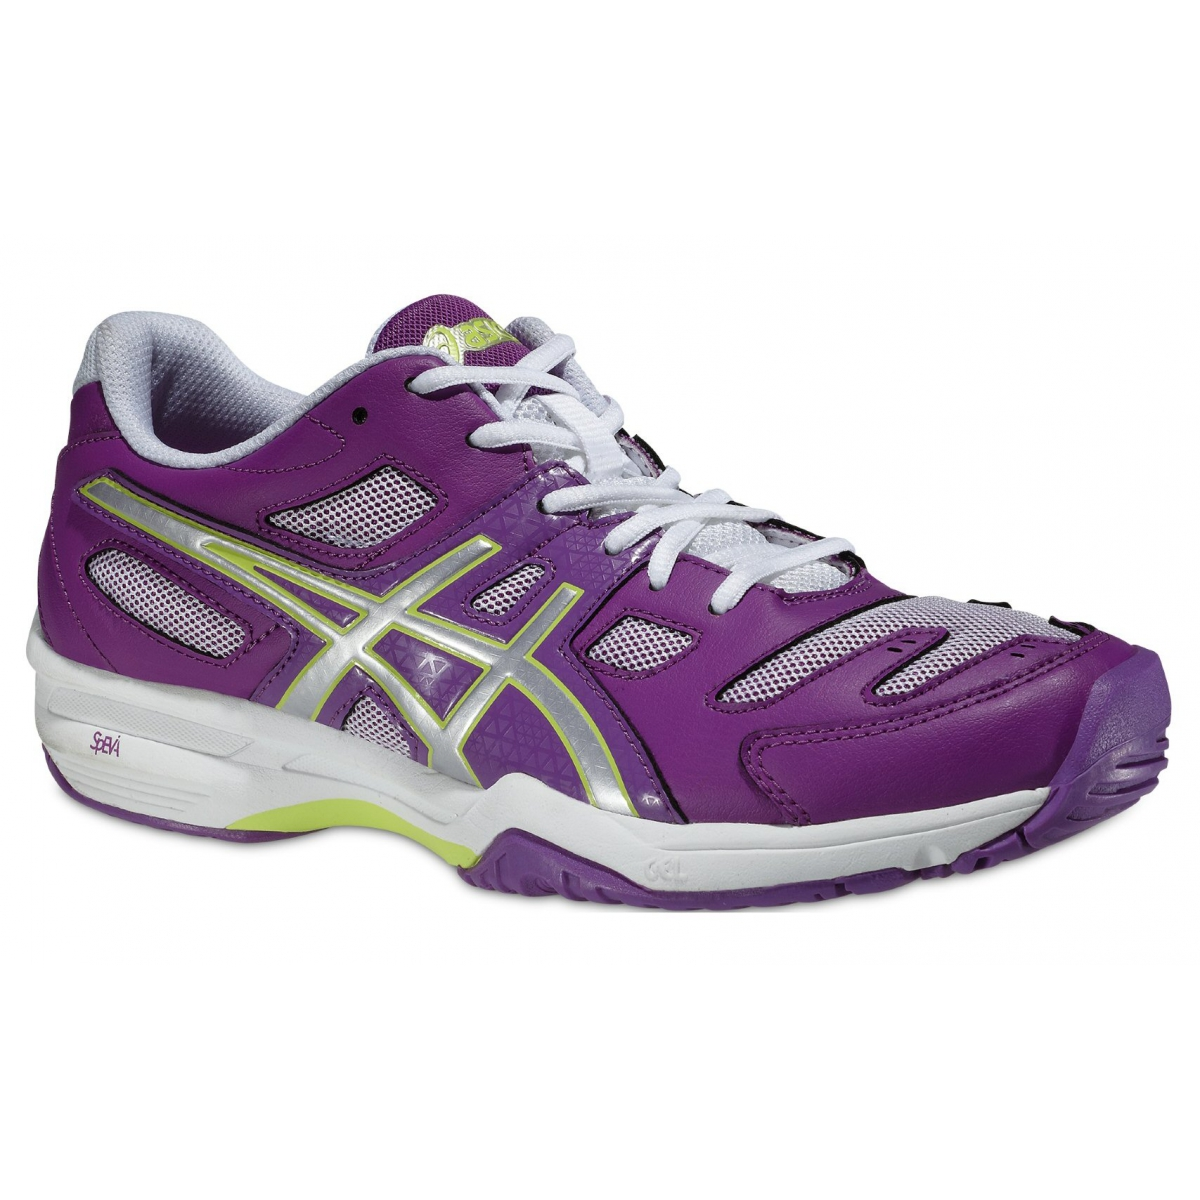 asics gel solution slam 2 grape tennisschuhe damen versandkostenfrei online bestellen. Black Bedroom Furniture Sets. Home Design Ideas